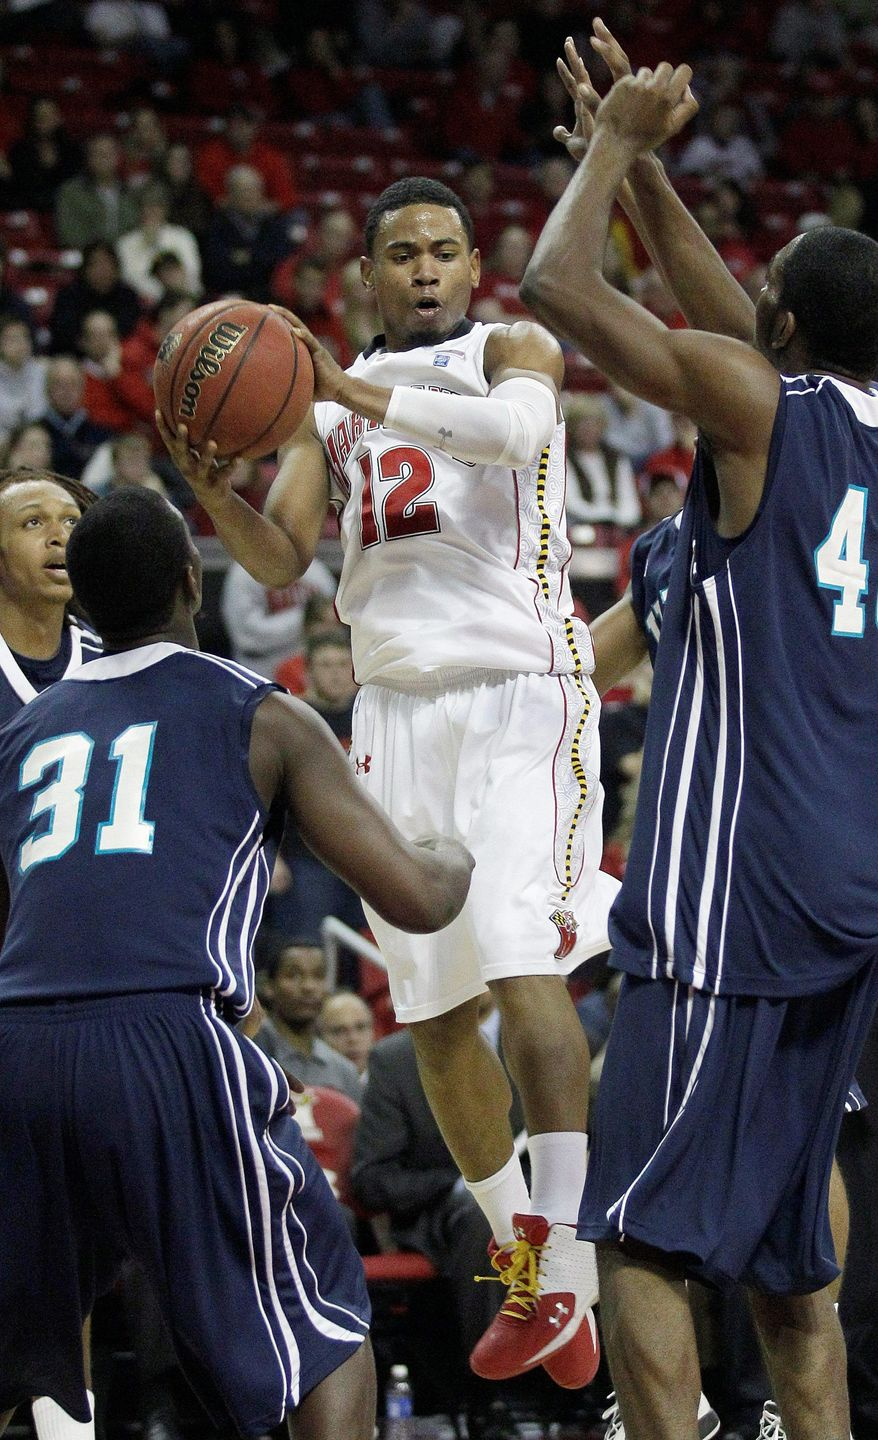 Maryland guard Terrell Stoglin came off the bench to score 22 points in 33 minutes Sunday in a 71-62 victory over UNC Wilmington. (Associated Press)